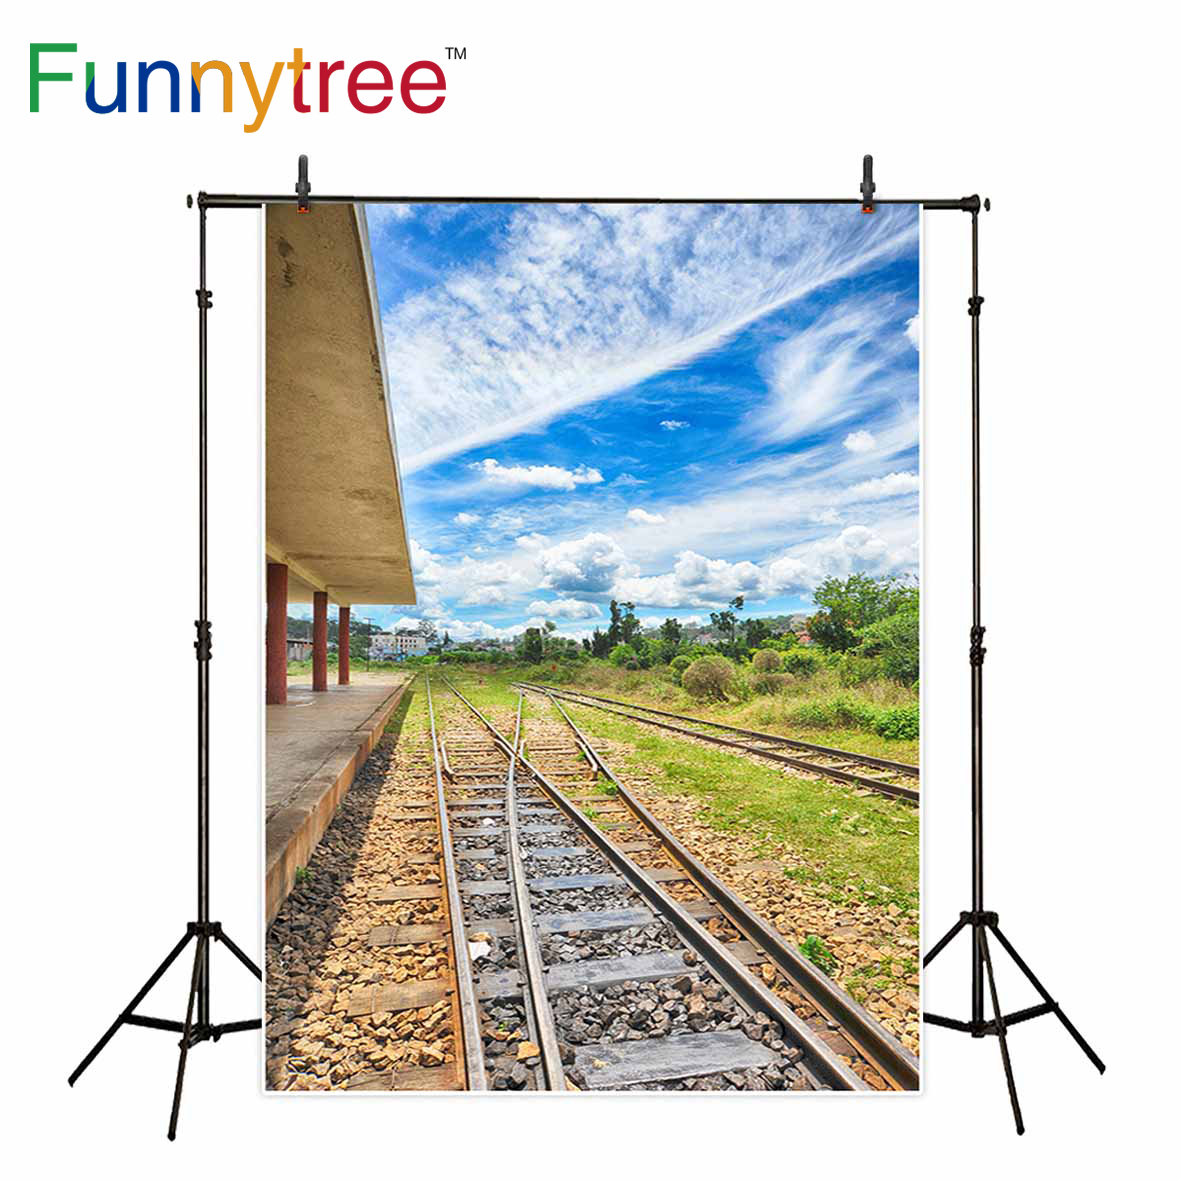 Funnytree photography backdrop railway blue sky travel natural scenery tree background photocall photobooth photographic